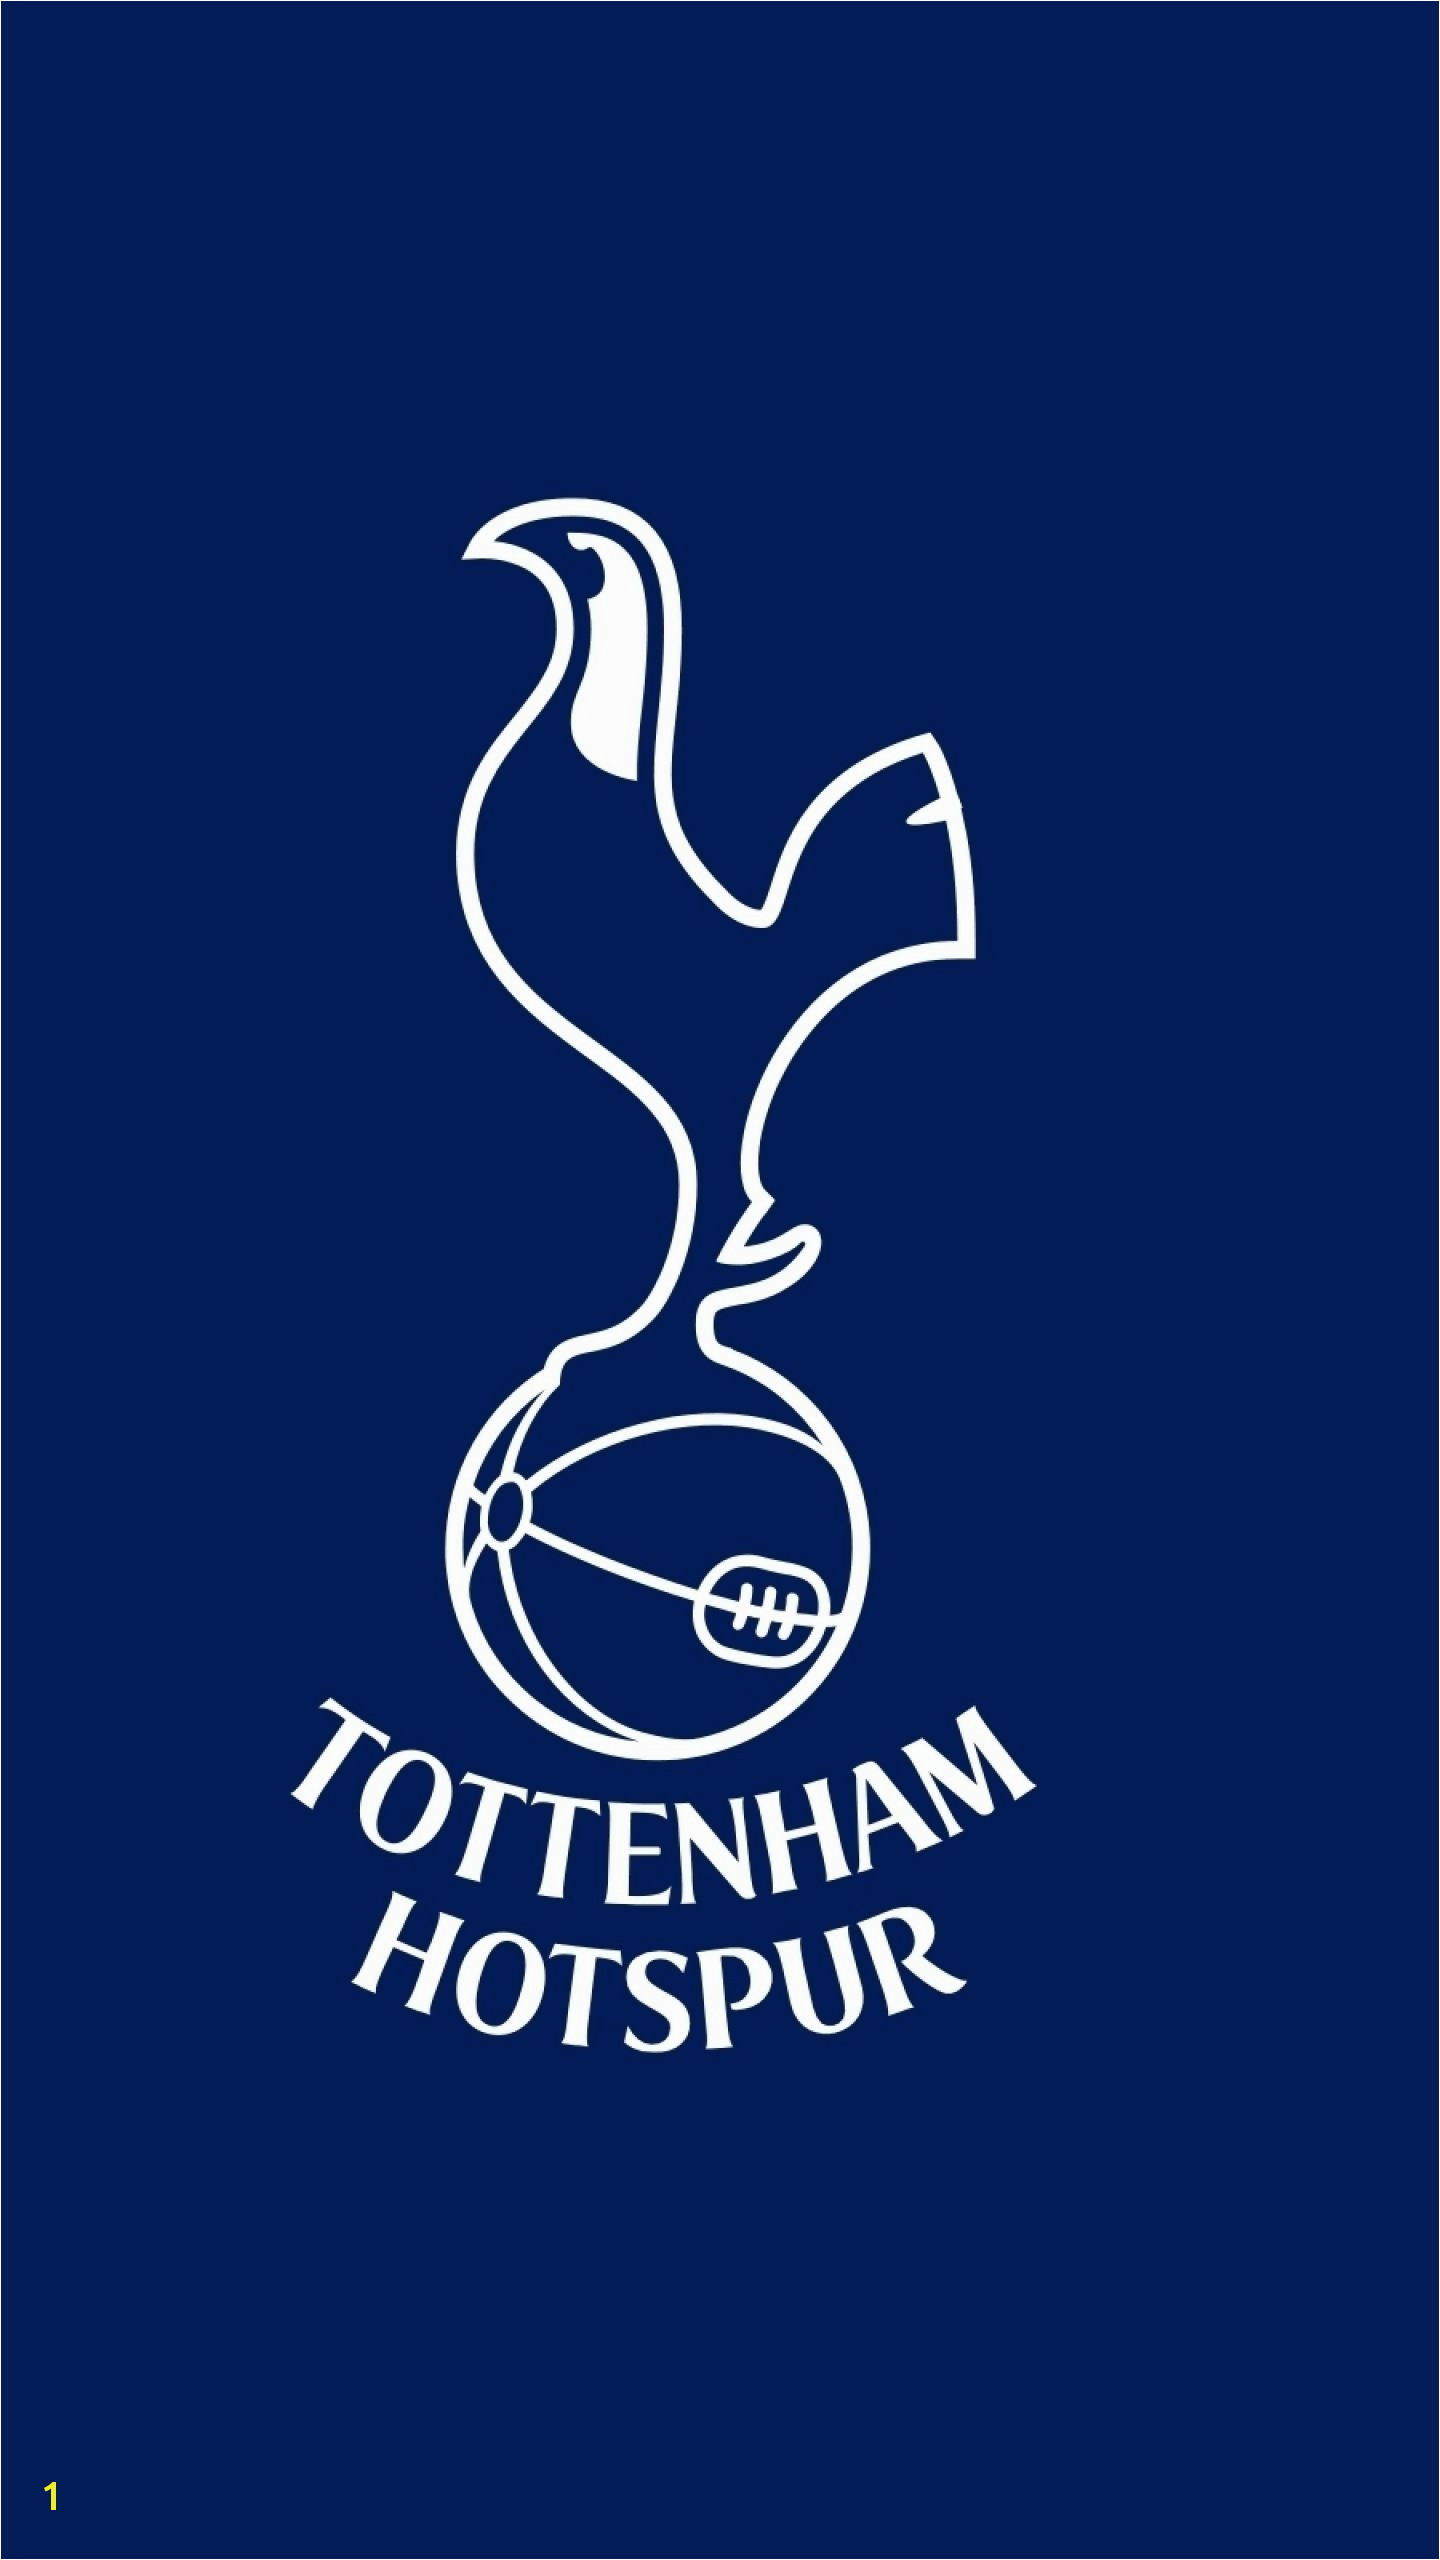 10 Latest Tottenham Hotspur Iphone Wallpaper FULL HD 1920—1080 For PC Background